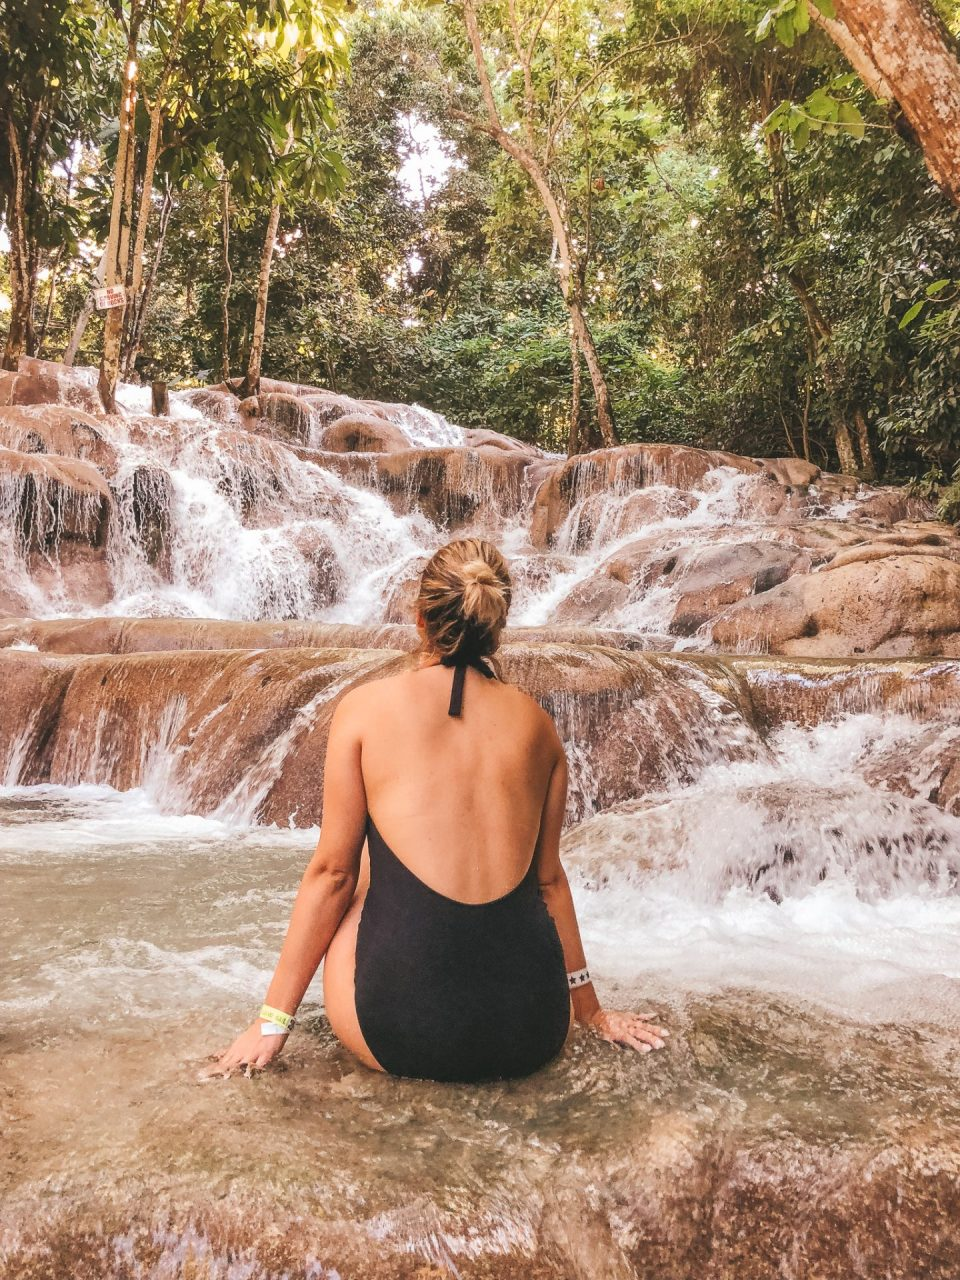 The Best Things To See in Ocho Rios